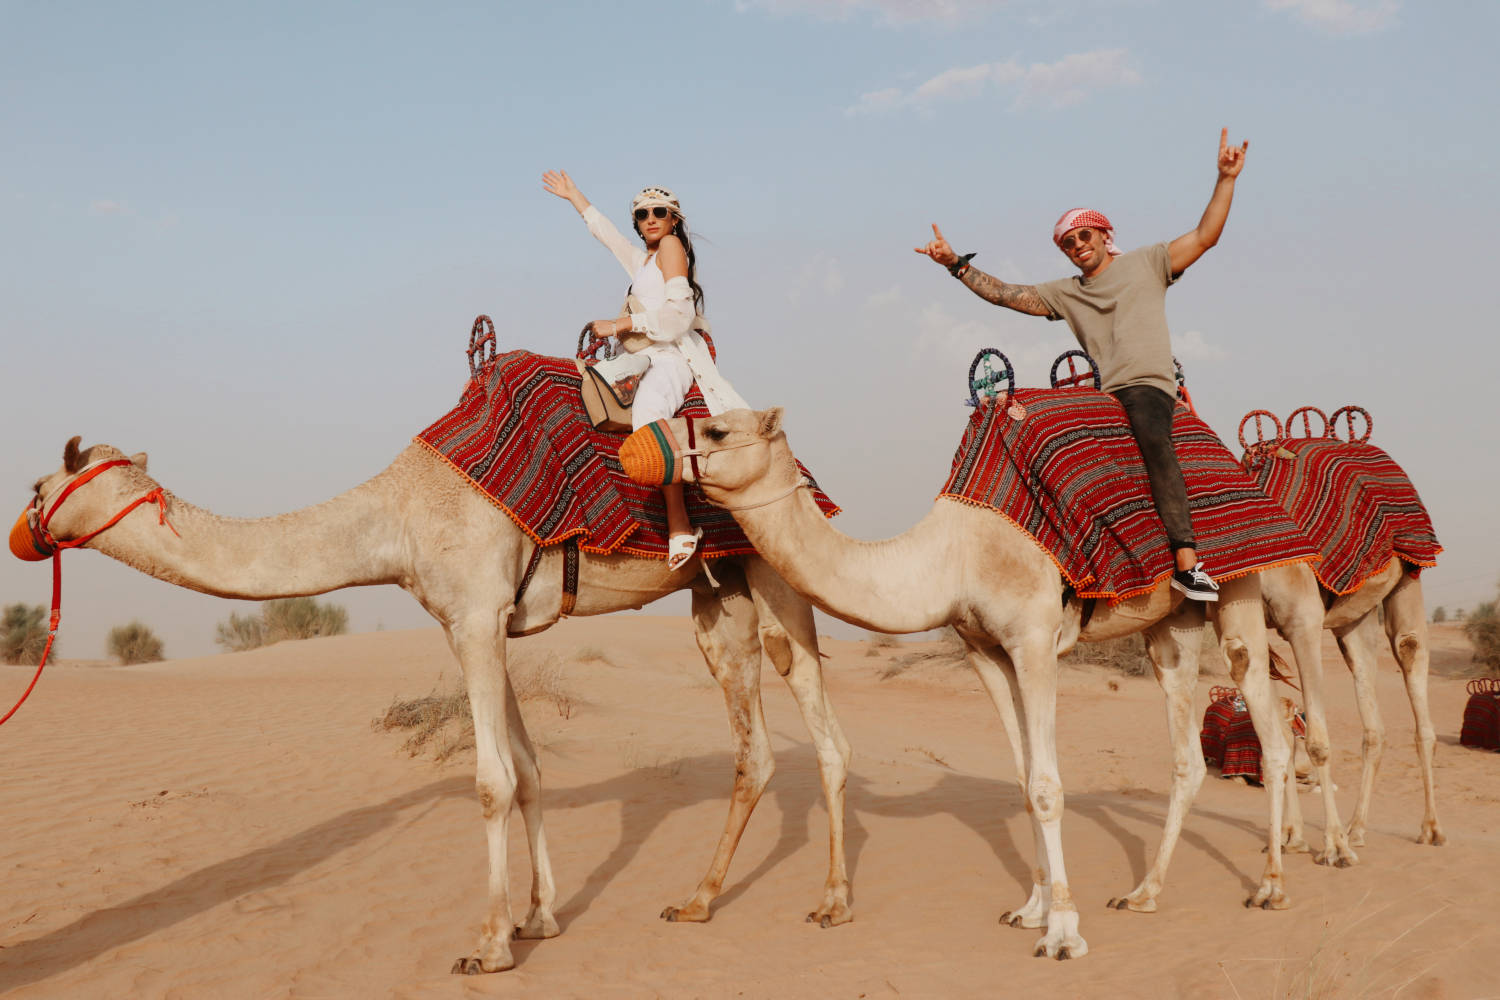 I Found The Most Ethical, Luxurious & Best Desert Safari in Dubai - Platinum Heritage Dubai